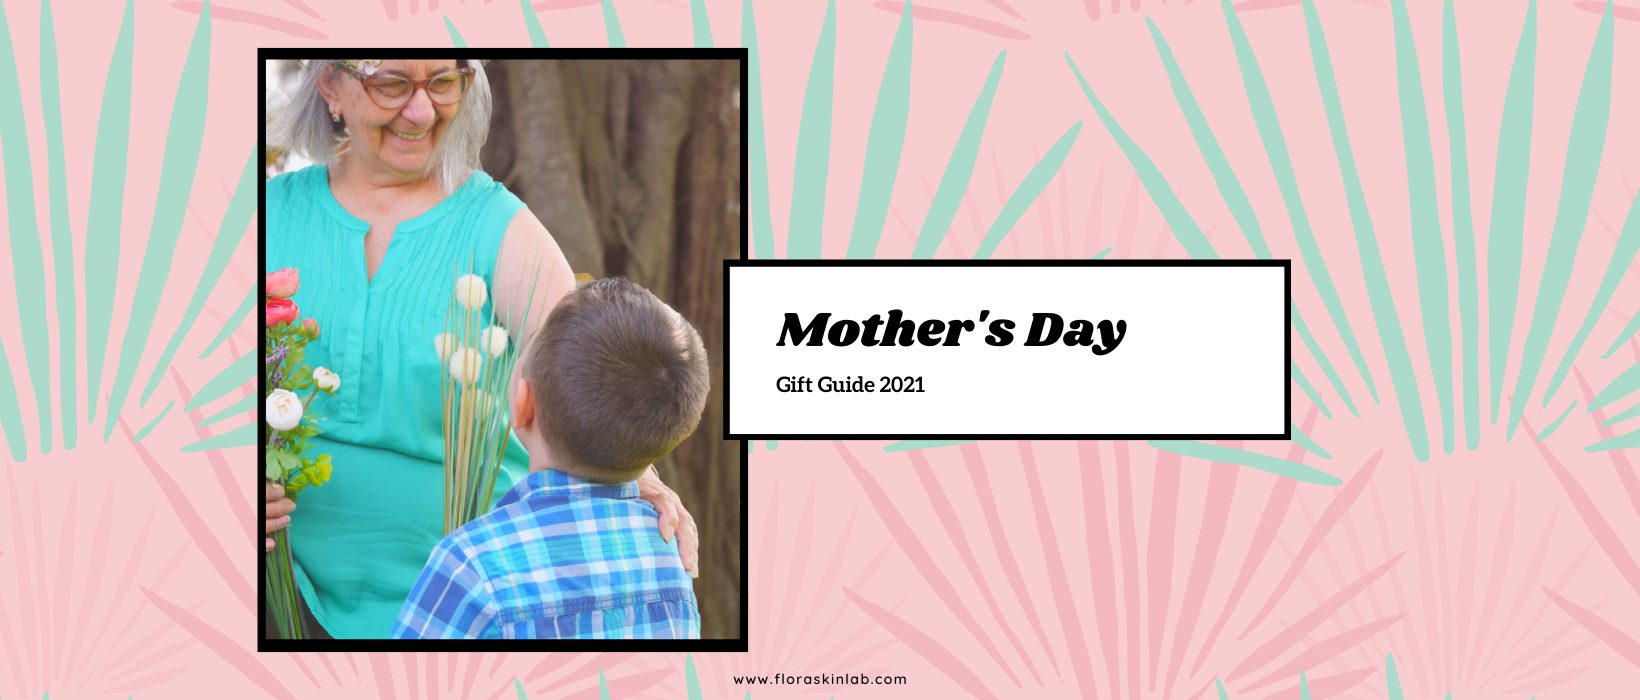 mom's day gift guide 2021 featured image